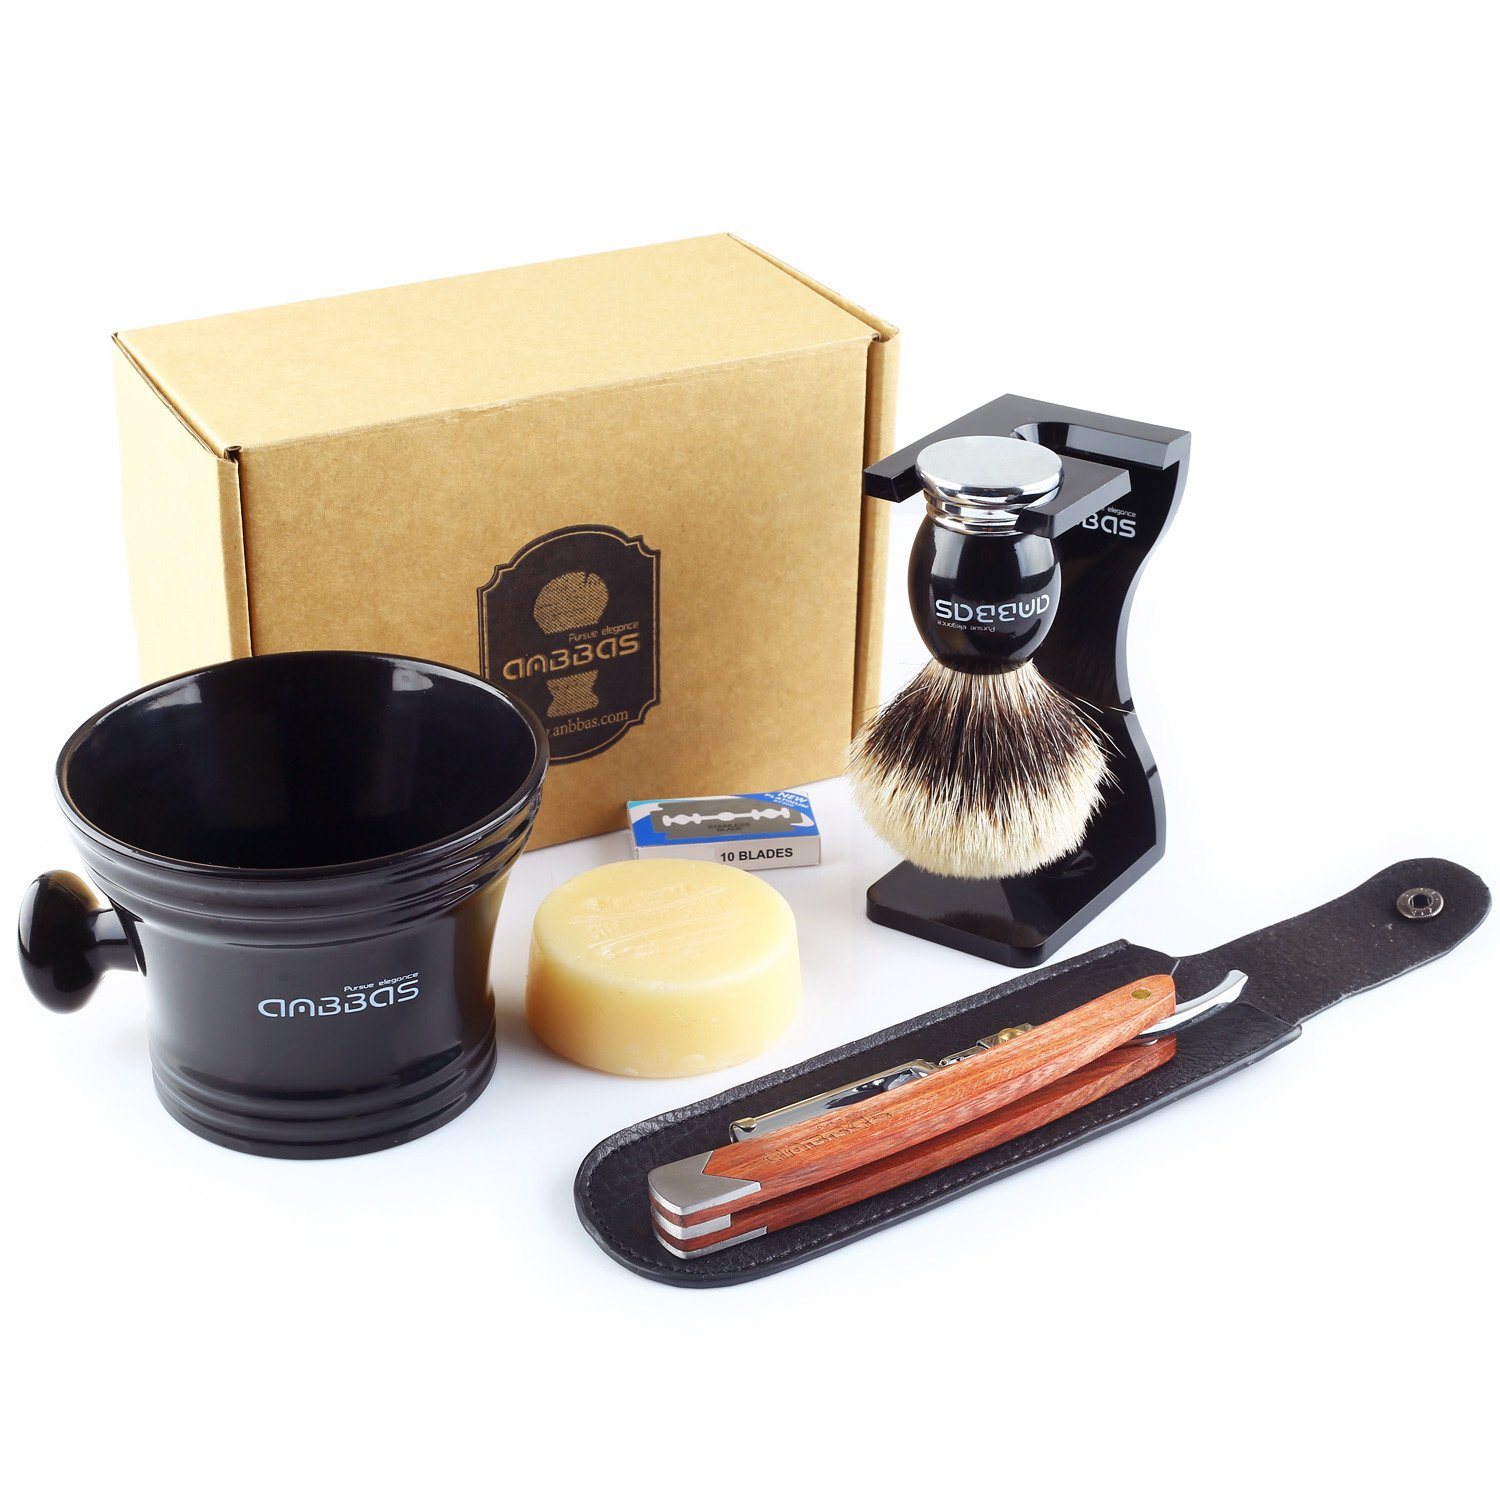 7pcs Shaving Set,Anbbas Silvertip Badger Shaving Brush,100g Goat Milk Soap,Acrylic Anti-impact Shaving Stand,Dia 4'' Resin Shaving Mug,Folding Rosewood Straight Razor,Shaving Shavette bag & 10 Blades